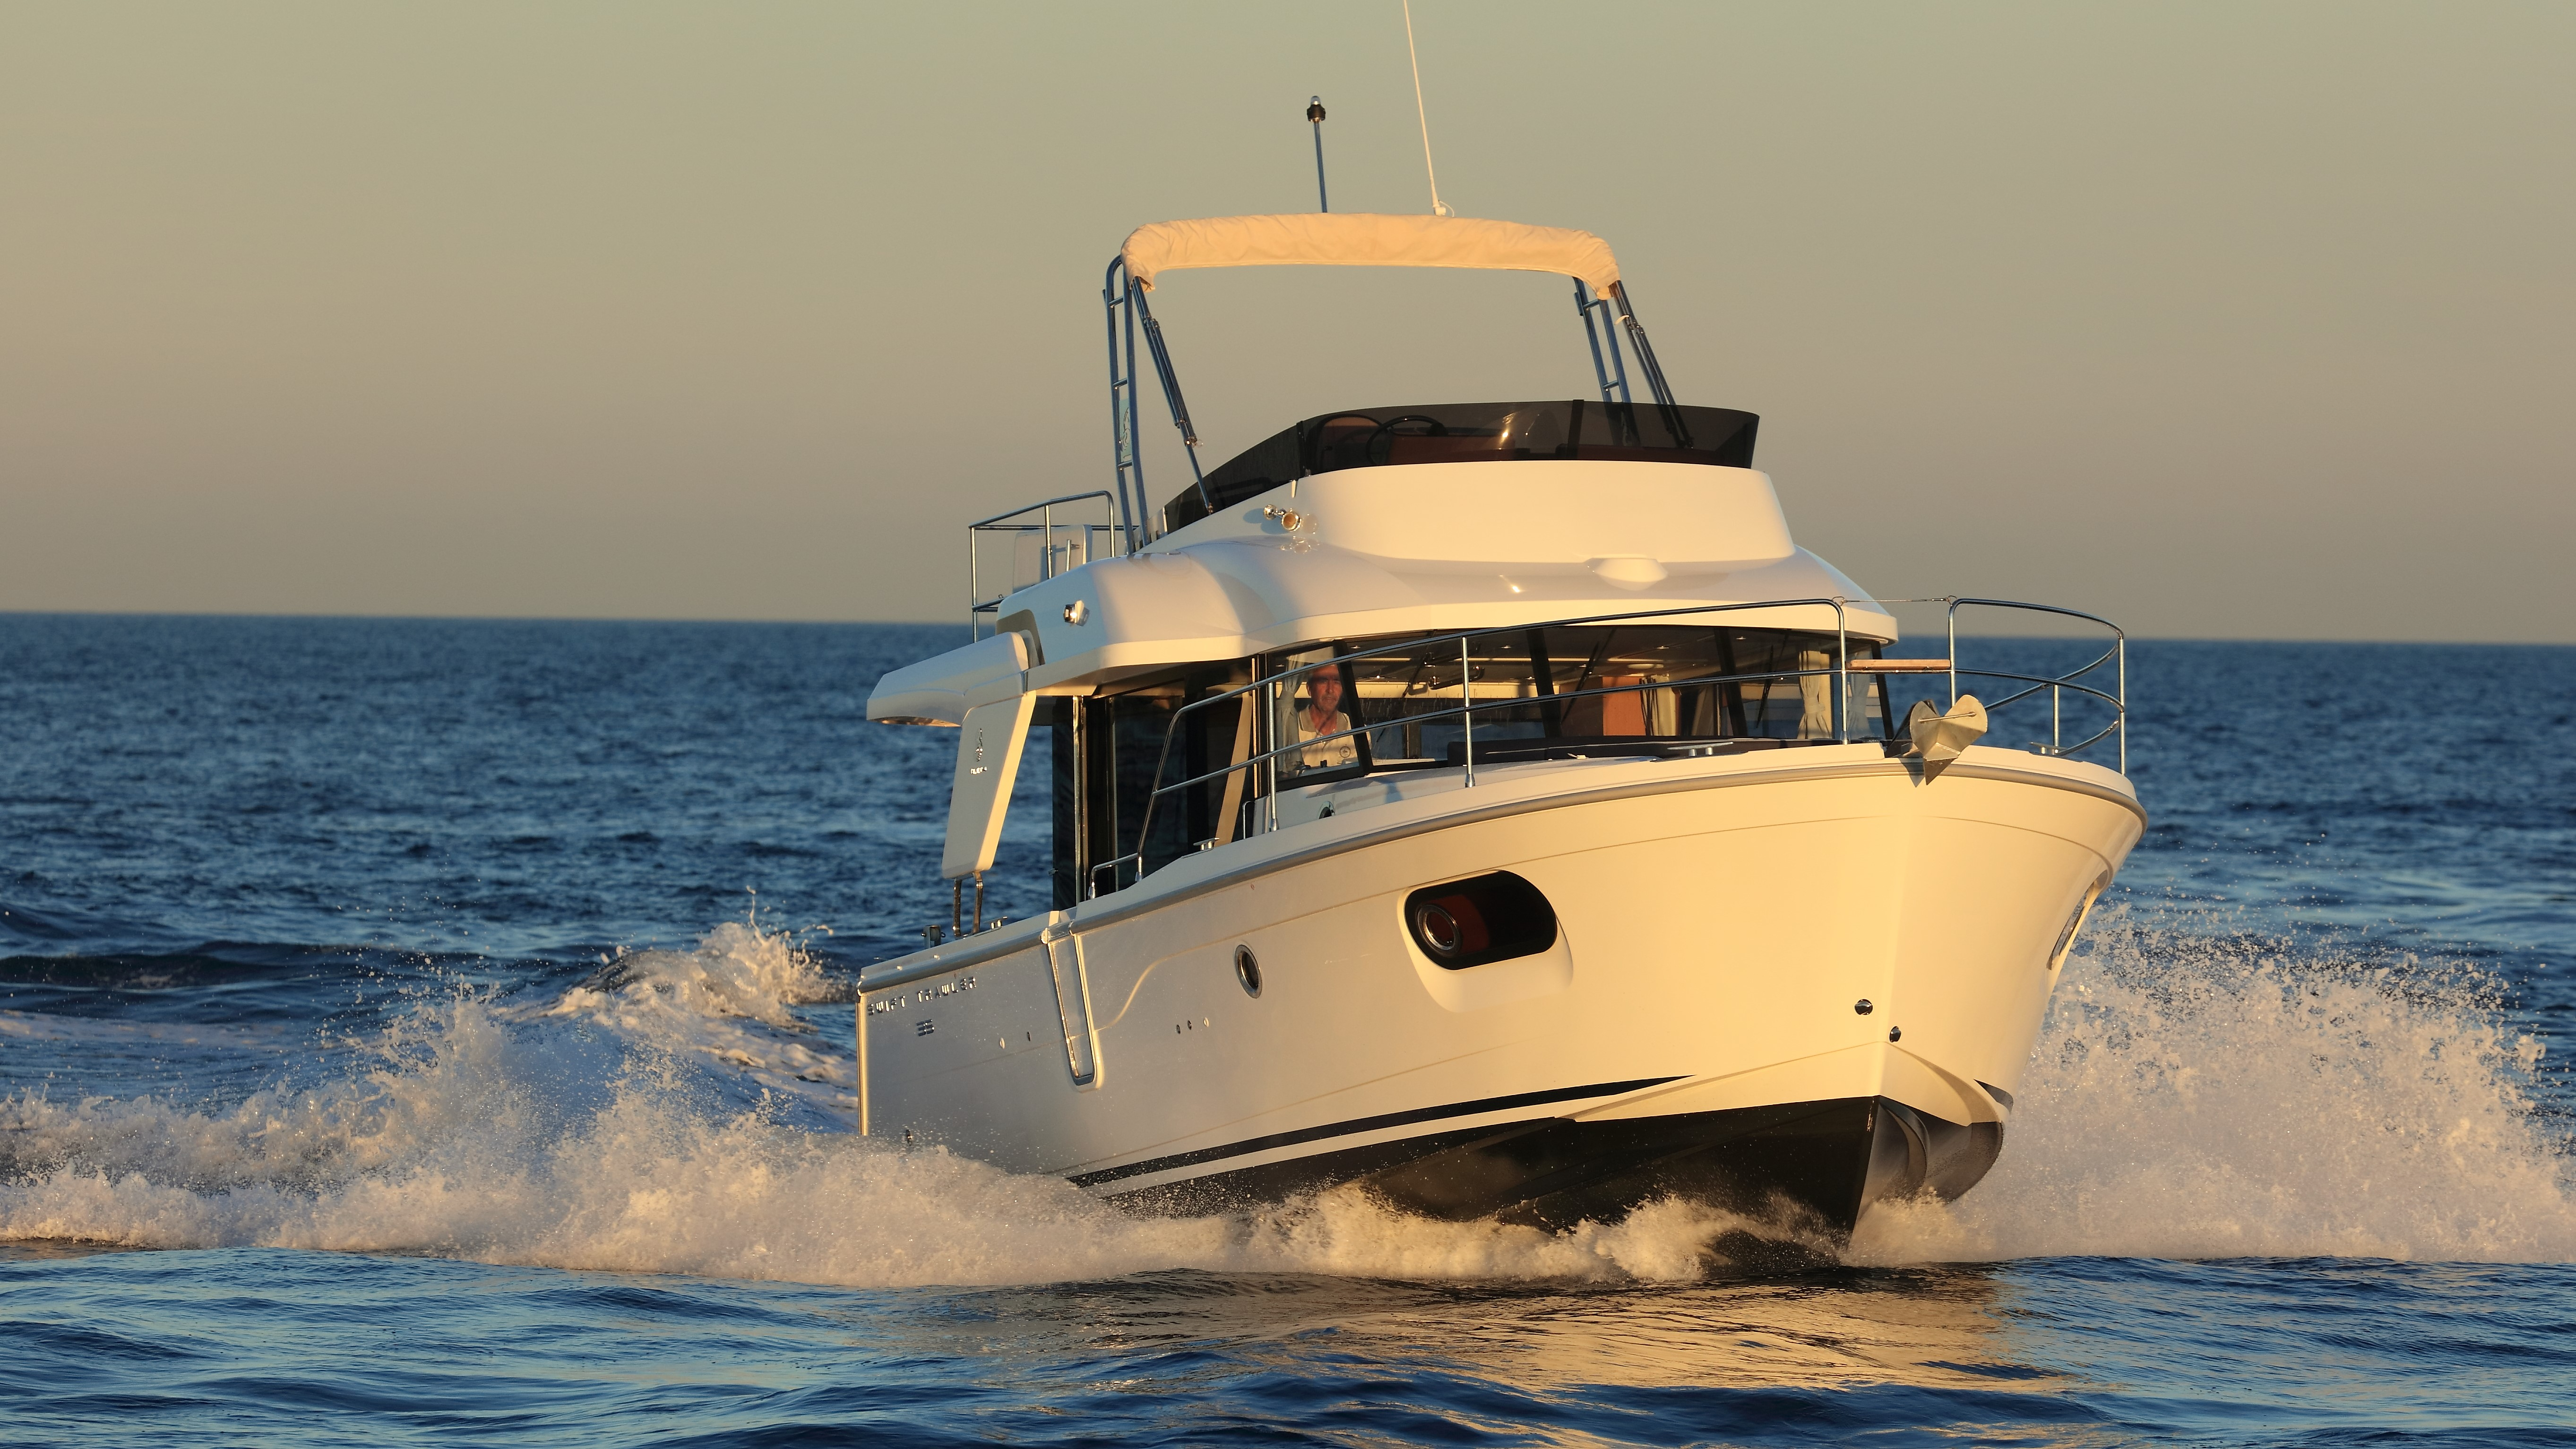 Beneteau Swift Trawler 35 Beneteau Swift Trawler 35 - Shared Ownership